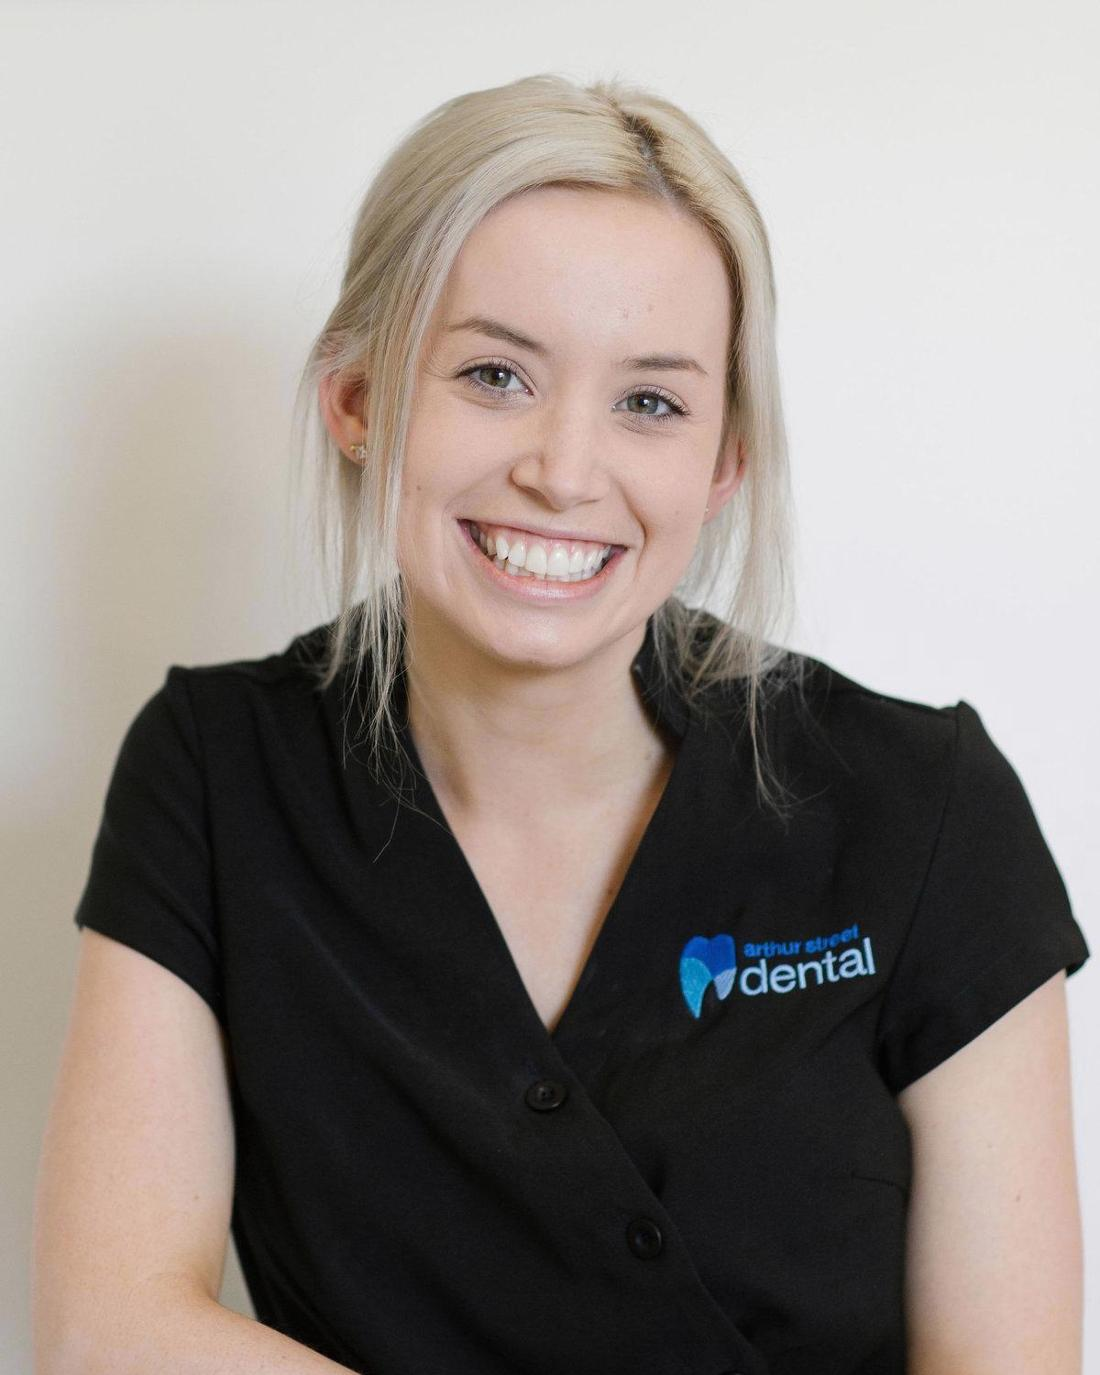 shannon timms, our senior dental assistant, smiles | coffs harbour dentist